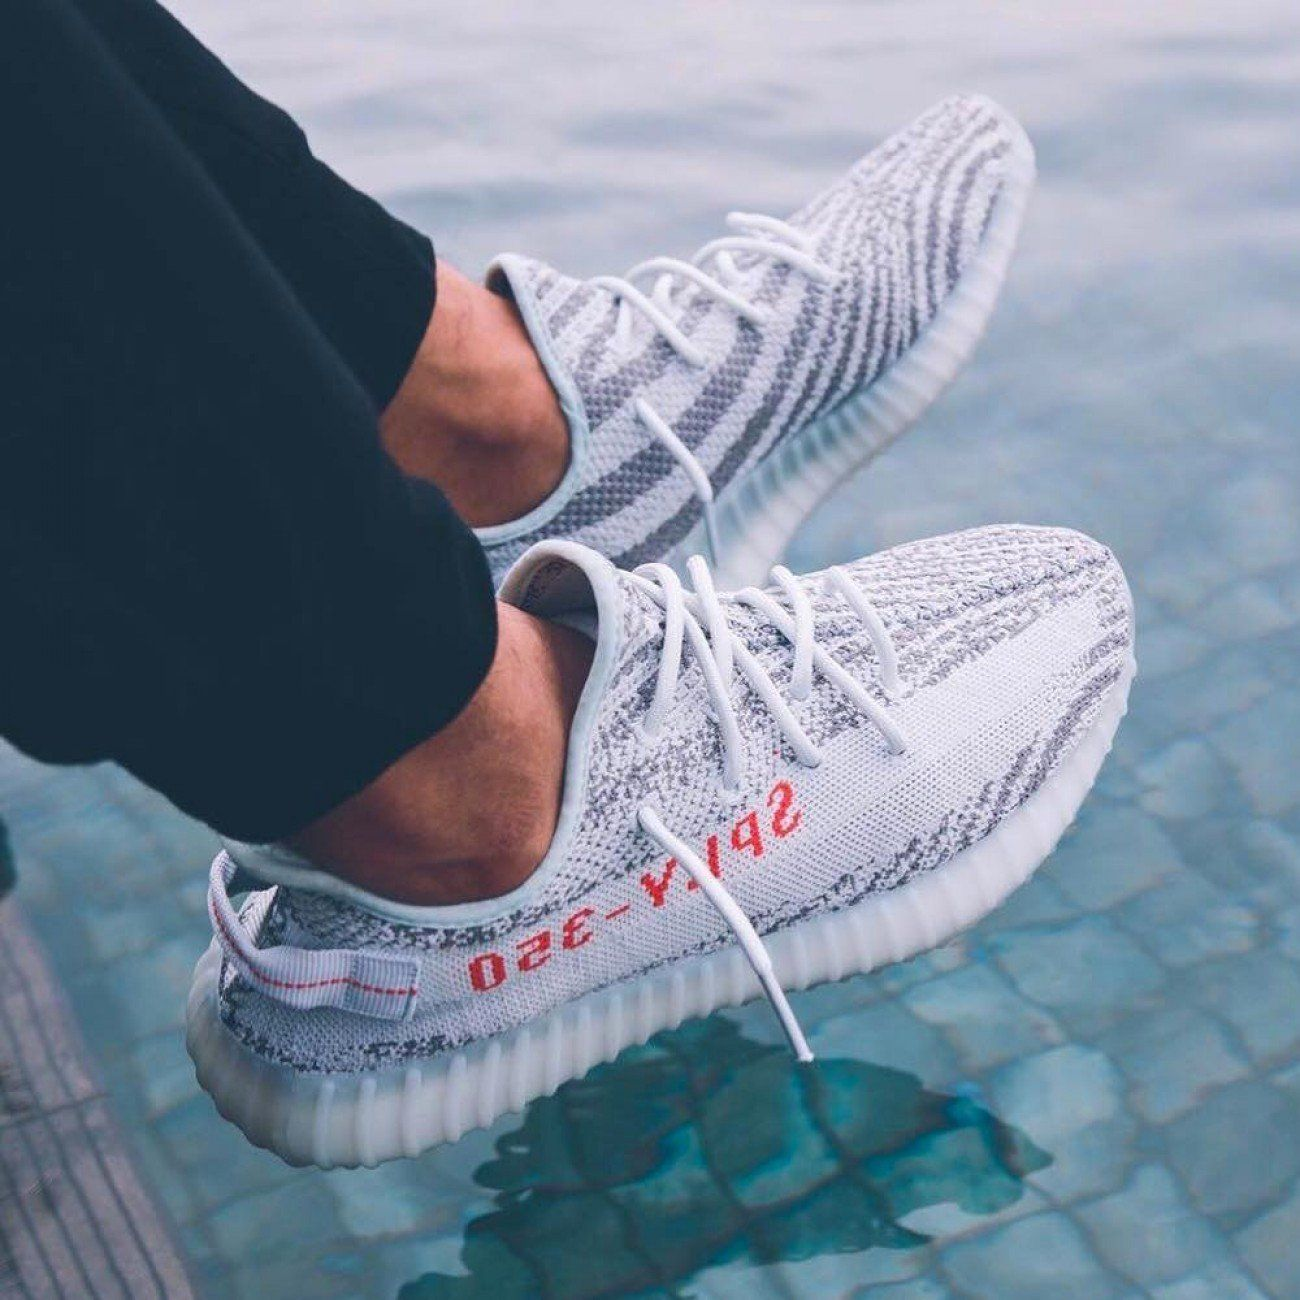 6fa3ff33 Blue Tint' YEEZY BOOST 350 V2 Limited - ALMOST GONE | shoes | Adidas ...